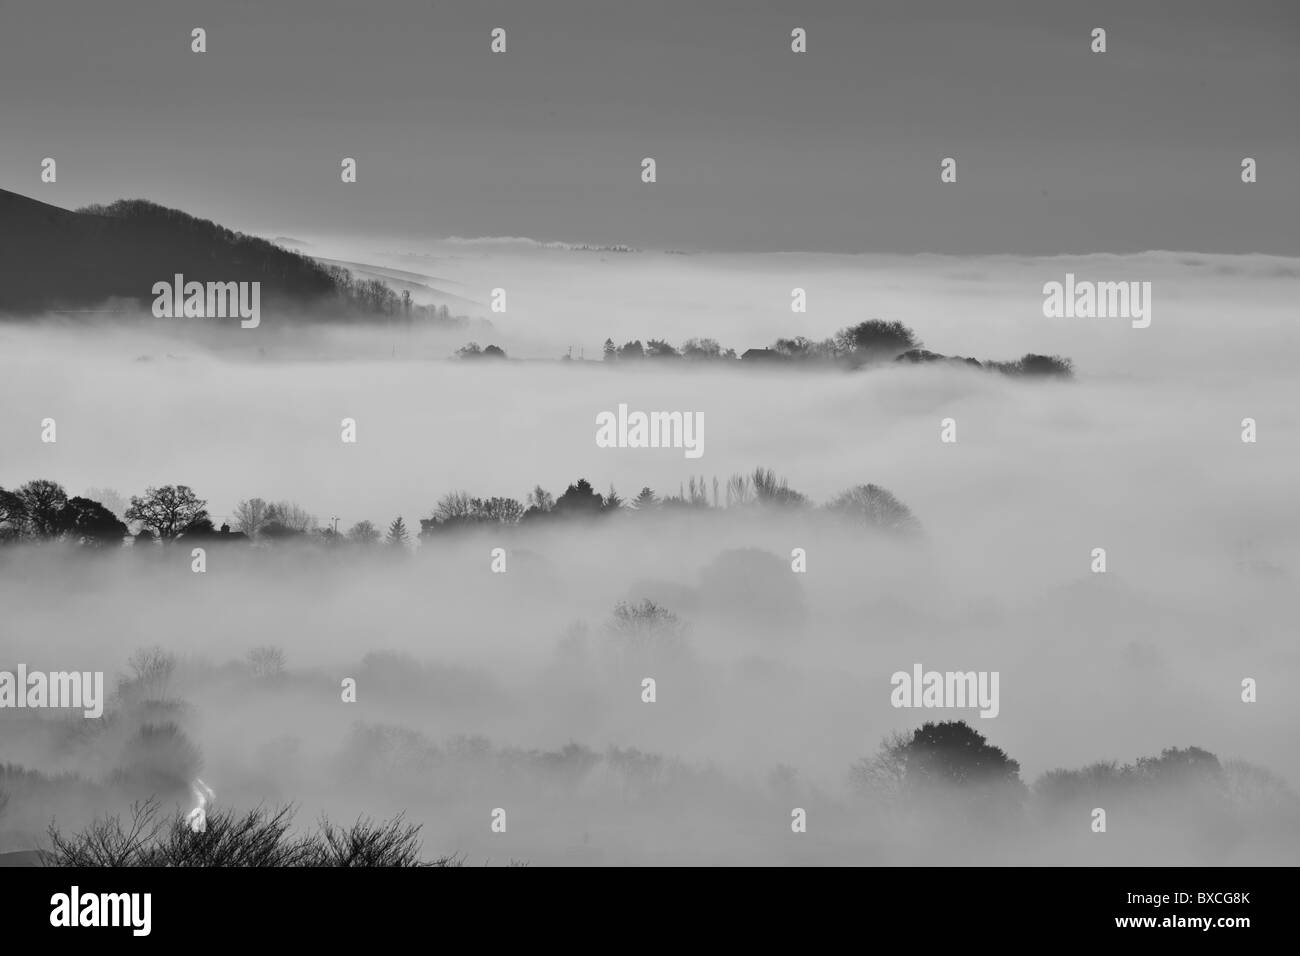 Misty December Morning at Shaftesbury in Dorset - Stock Image